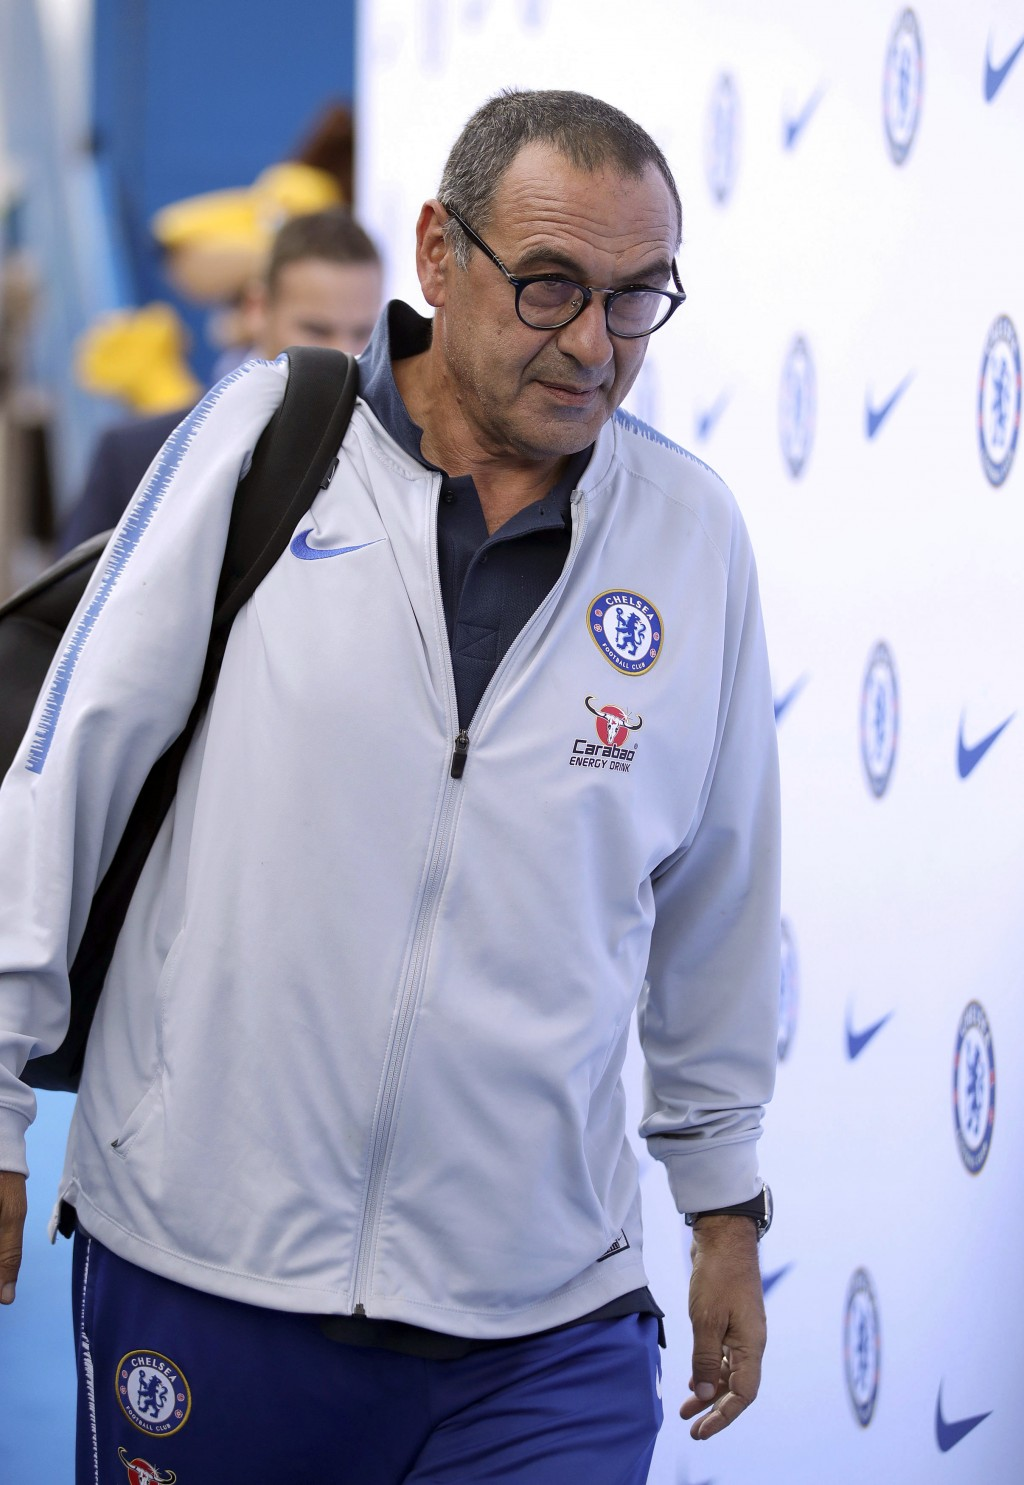 Chelsea manager Maurizio Sarri arrives ahead of a Premier League soccer match between Chelsea and Bounemouth, at Stamford Bridge, London, Saturday, Se